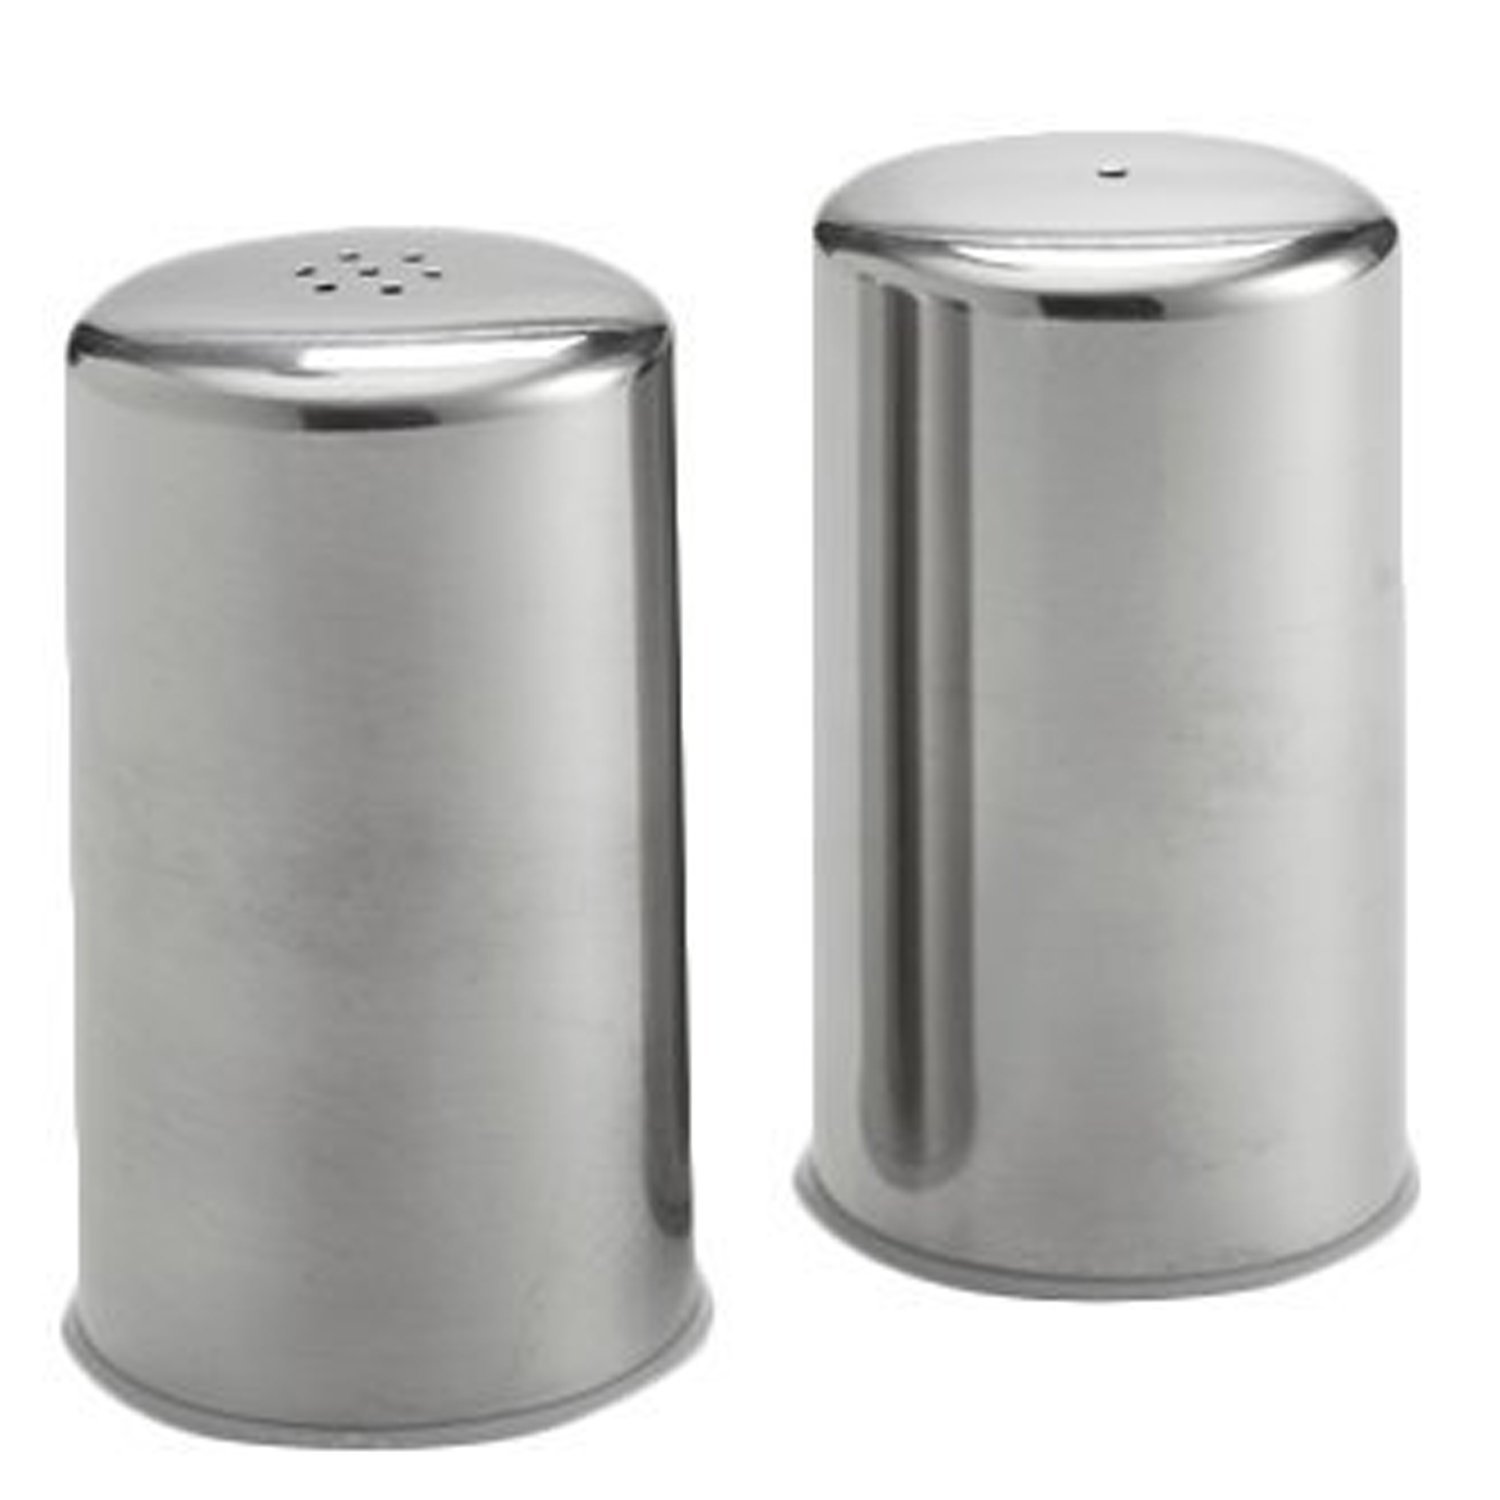 Modern Salt and Pepper Shakers Stainless Steel 2.oz (Set of 2)